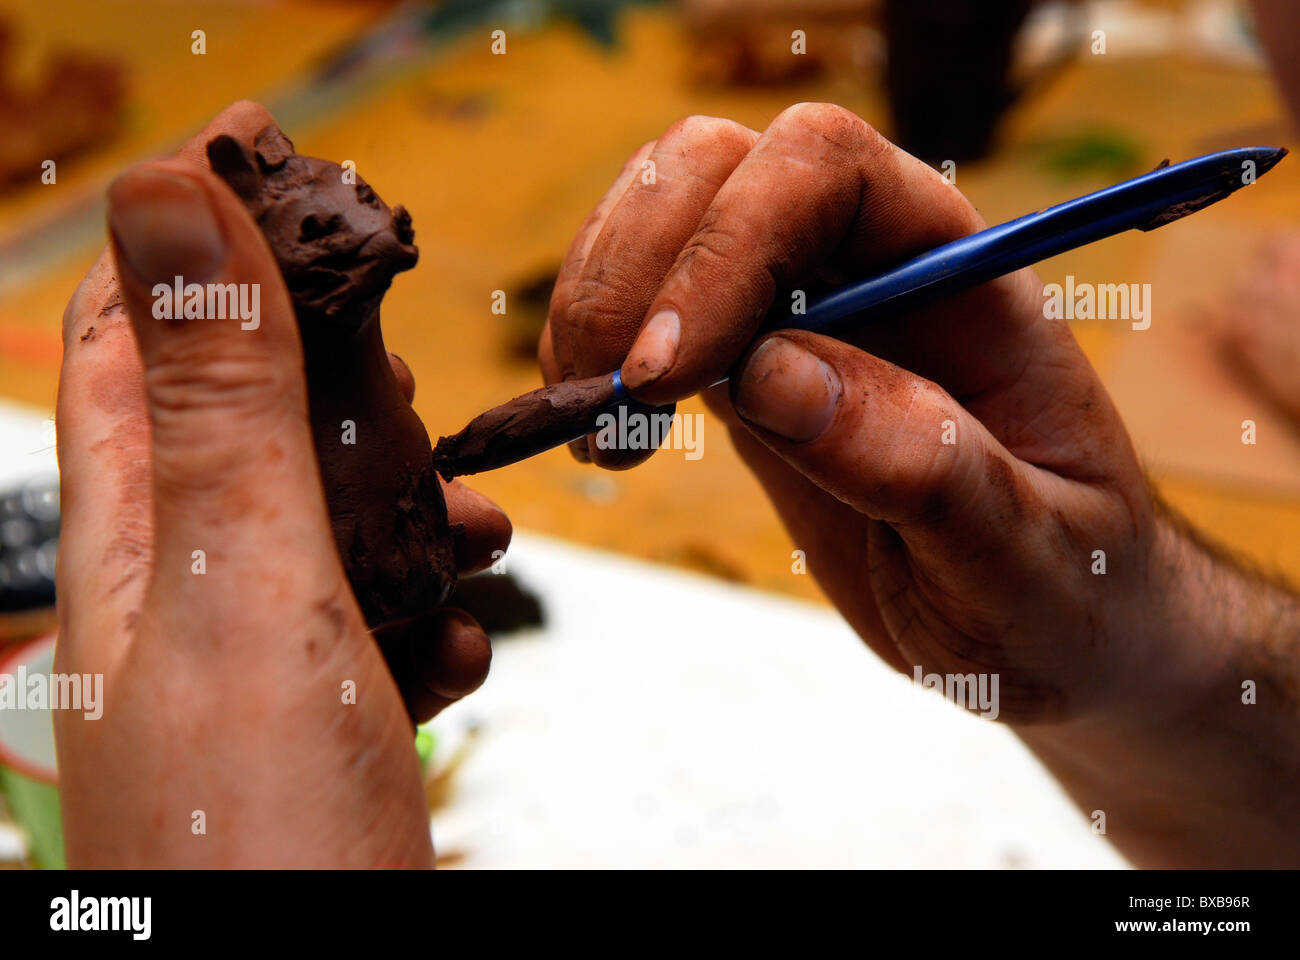 Man engaged in an art therapy programme, Nottingham, UK. - Stock Image